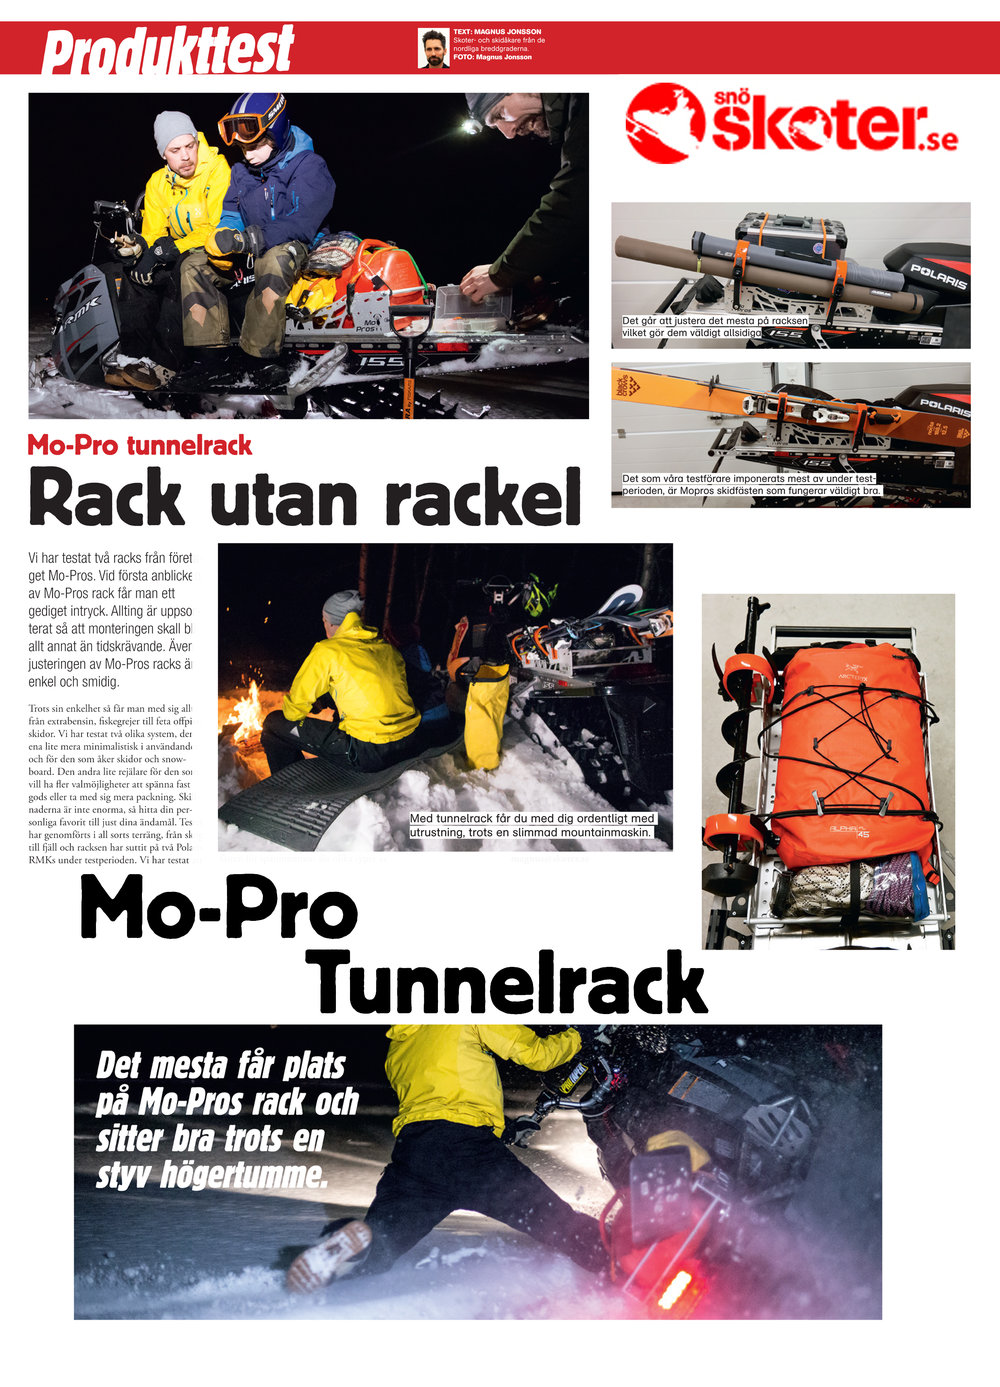 Magazine Test Rack Article Sweden_Write Up Photo DT_Snowmobile_Ski_Snowboard_Cargo_Gear_Rack_CFR_backcountry_Cheetah_Factory_united_polaris_skidoo_arctic_cat_Linq syst.jpg